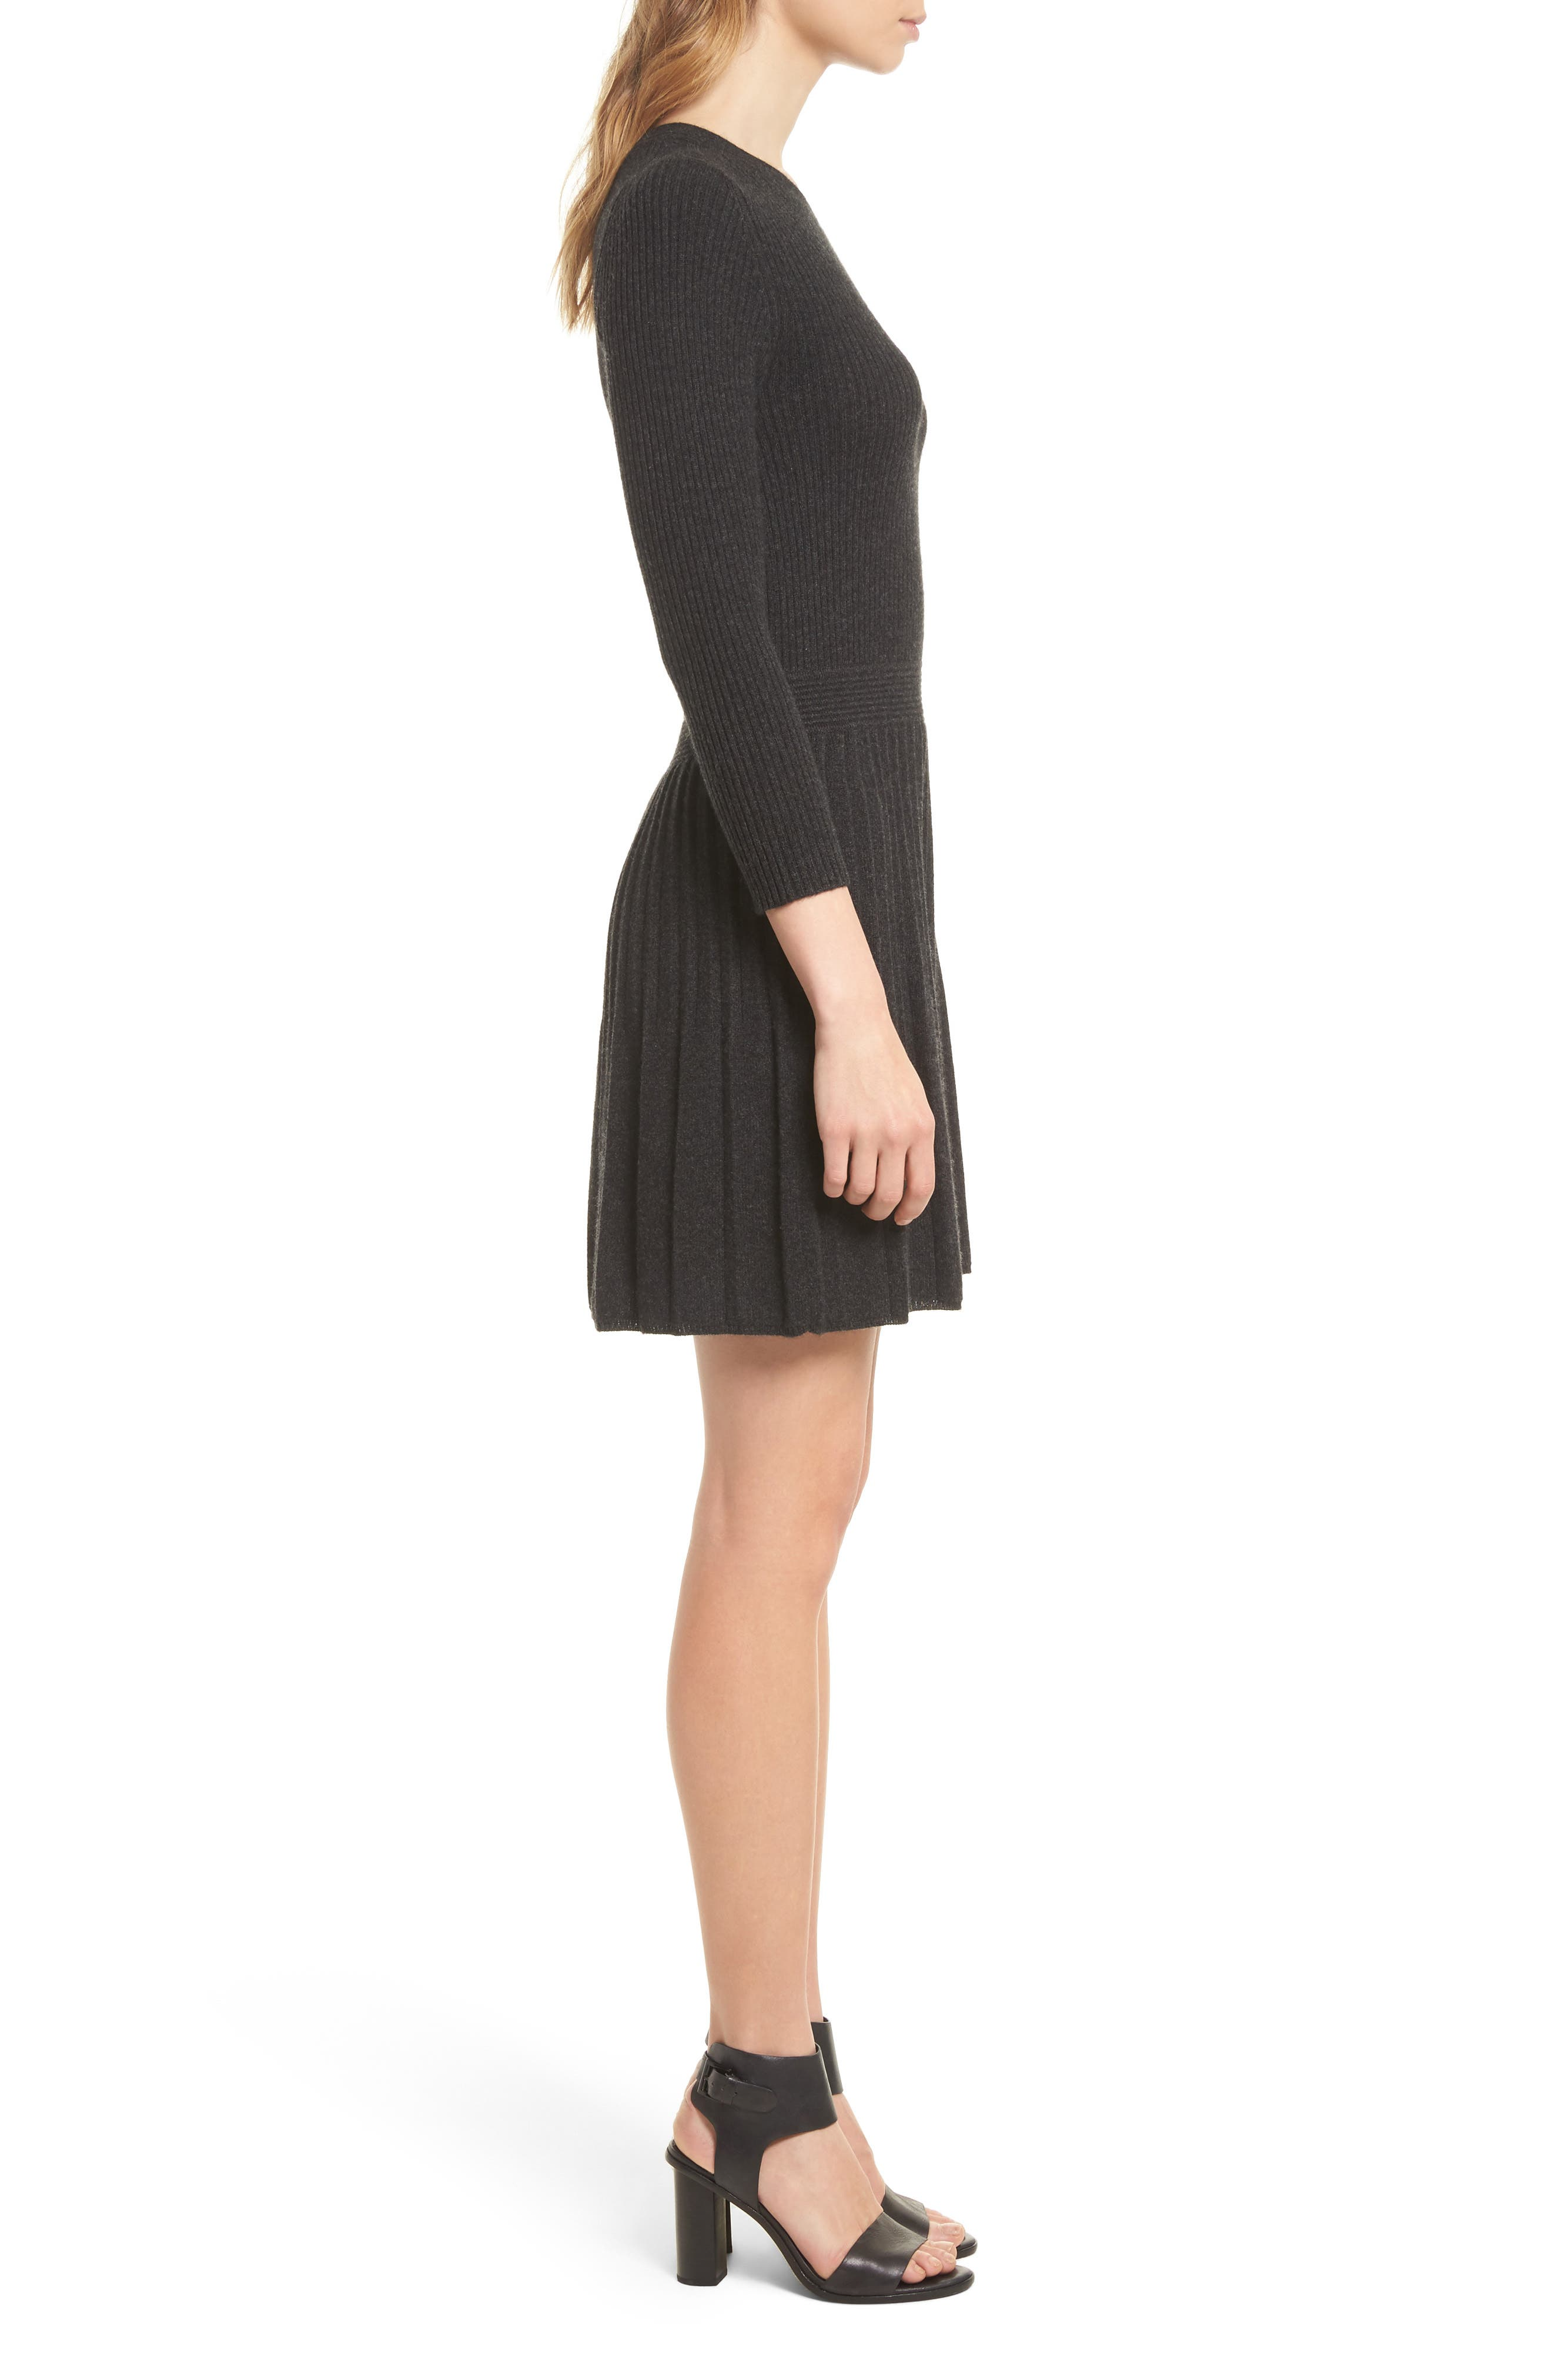 Peronne B Knit Wool & Cashmere Fit & Flare Dress,                             Alternate thumbnail 3, color,                             071